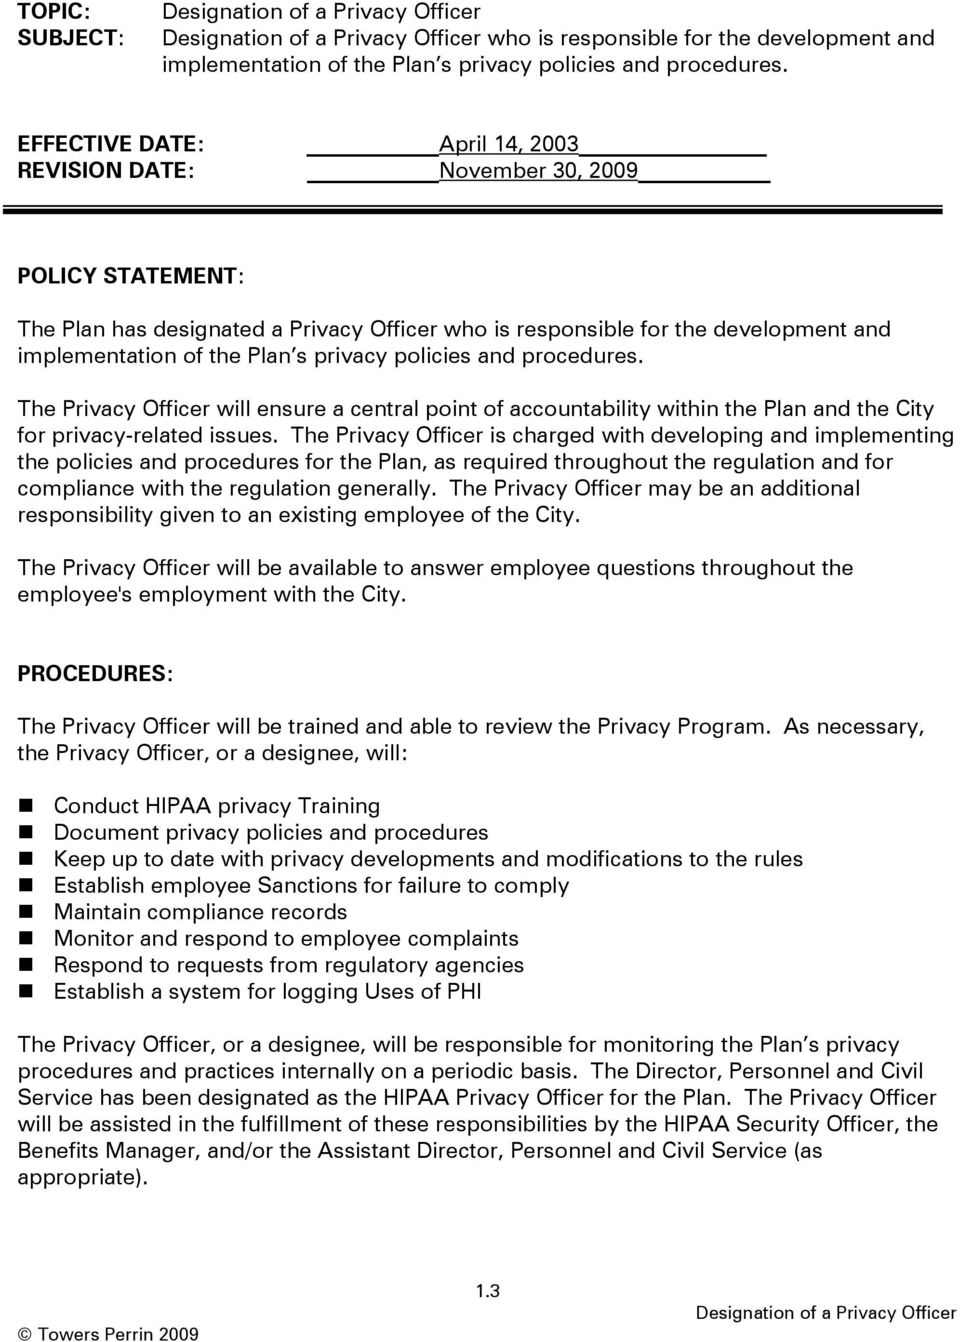 privacy policies and procedures. The Privacy Officer will ensure a central point of accountability within the Plan and the City for privacy-related issues.